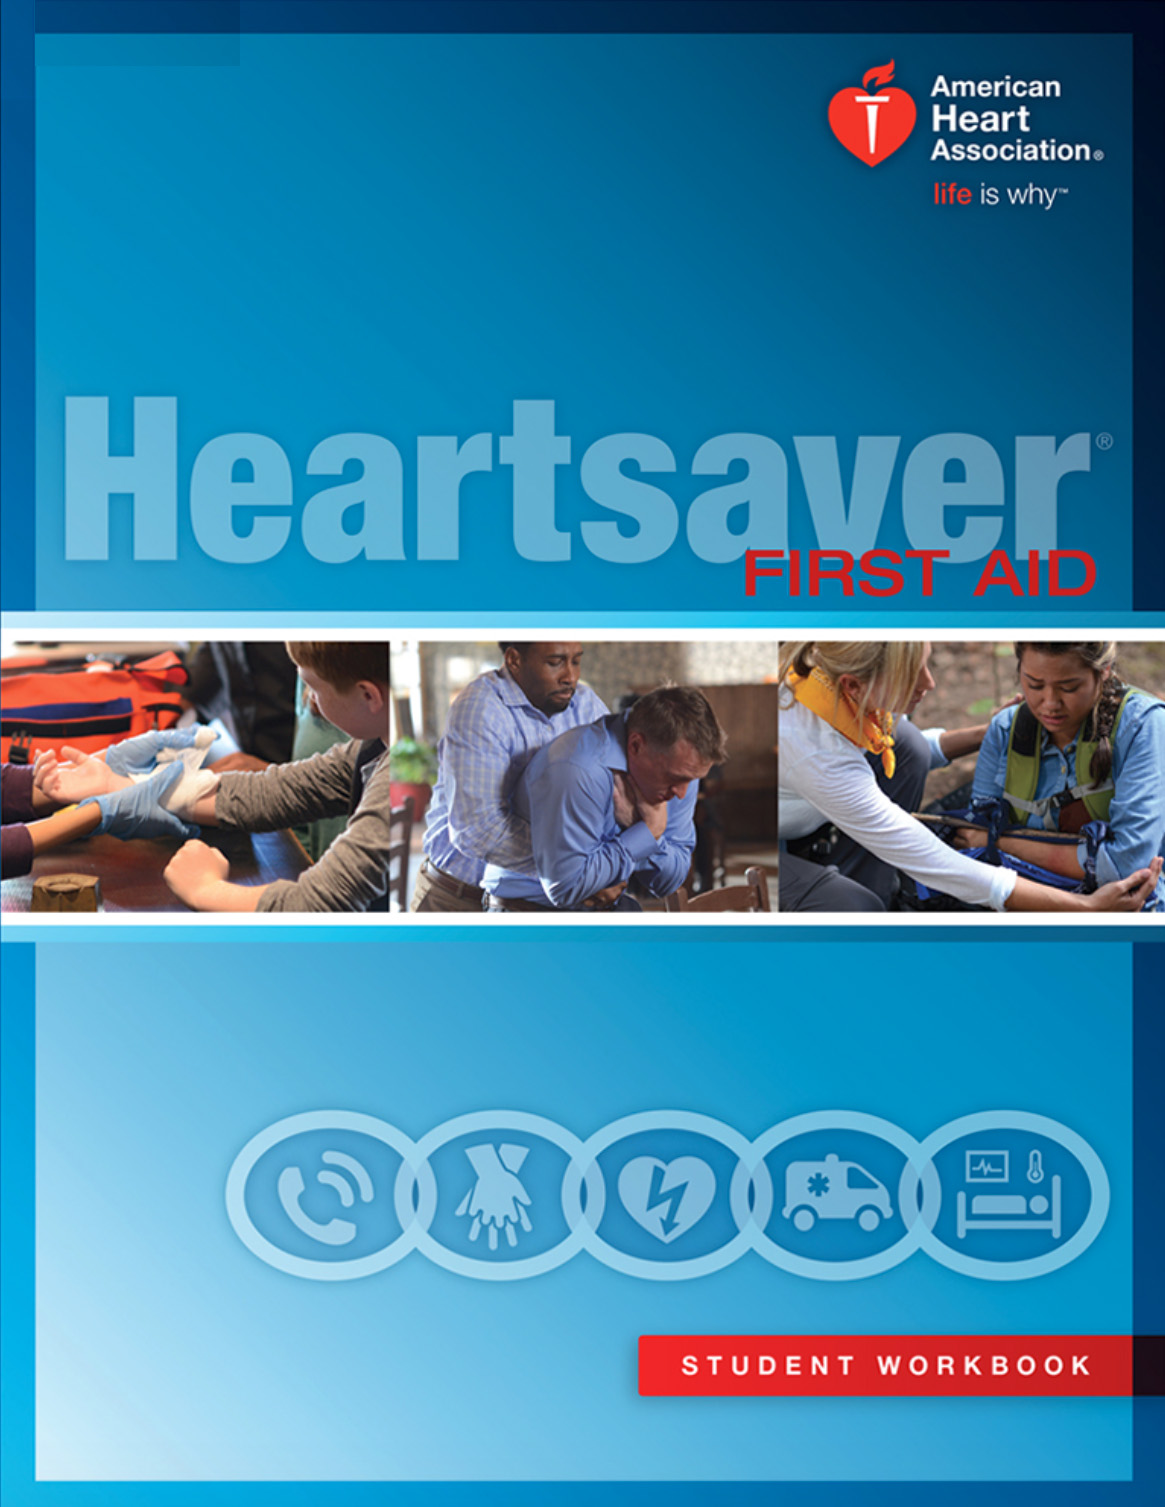 Heartsaver First Aidcpraed Spruce Mountain Adult Education